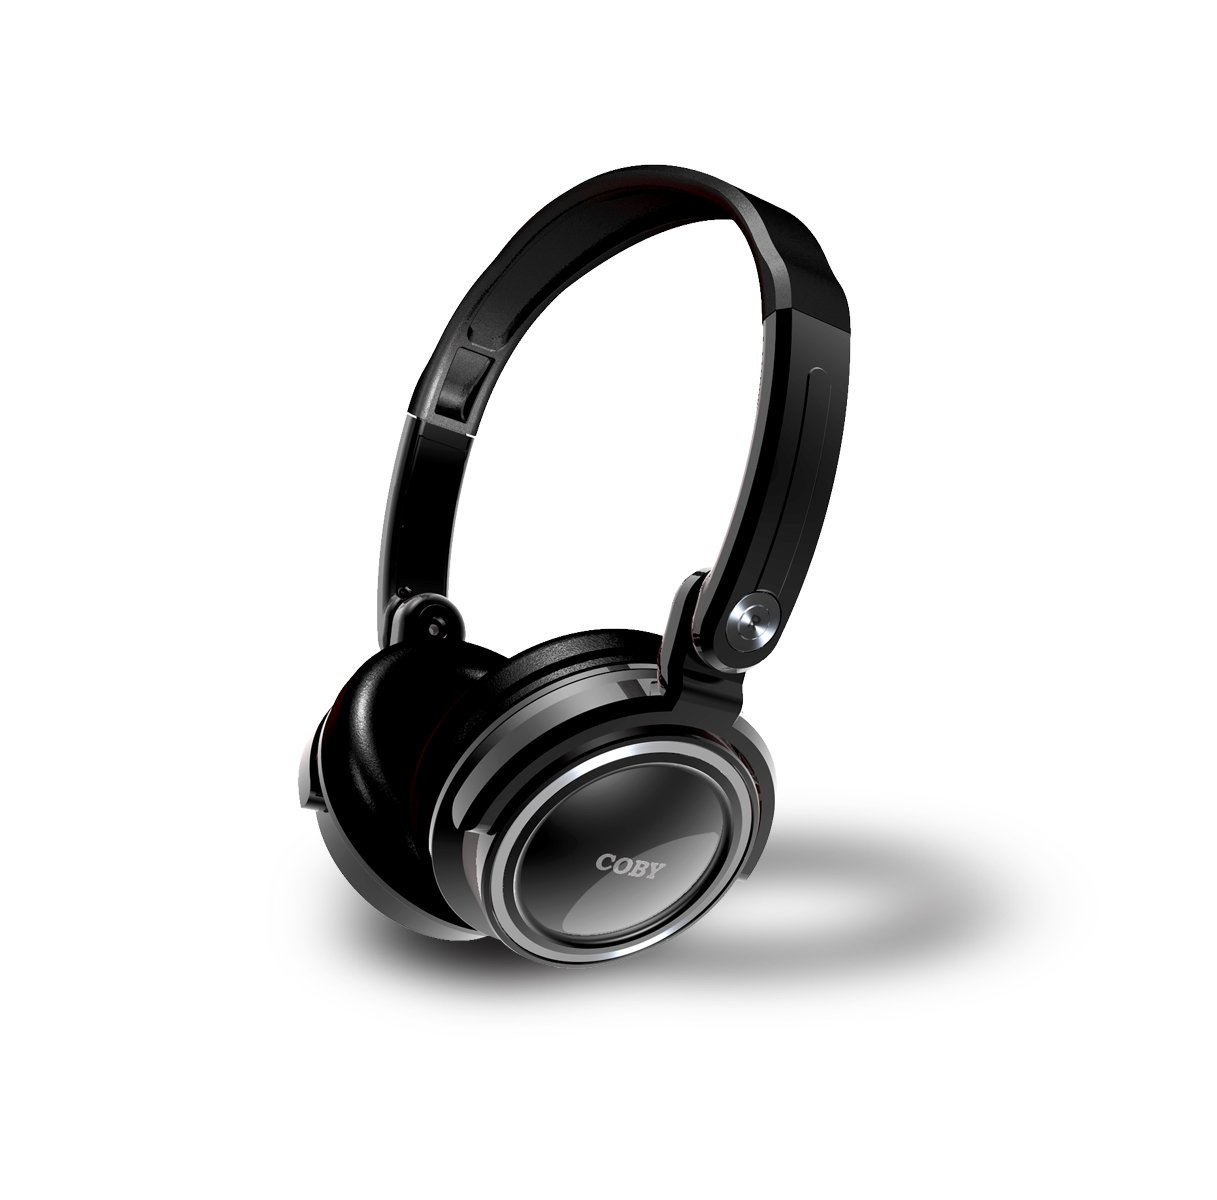 Coby CV185 Folding Deep Bass Stereo Headphones, Black $9.48